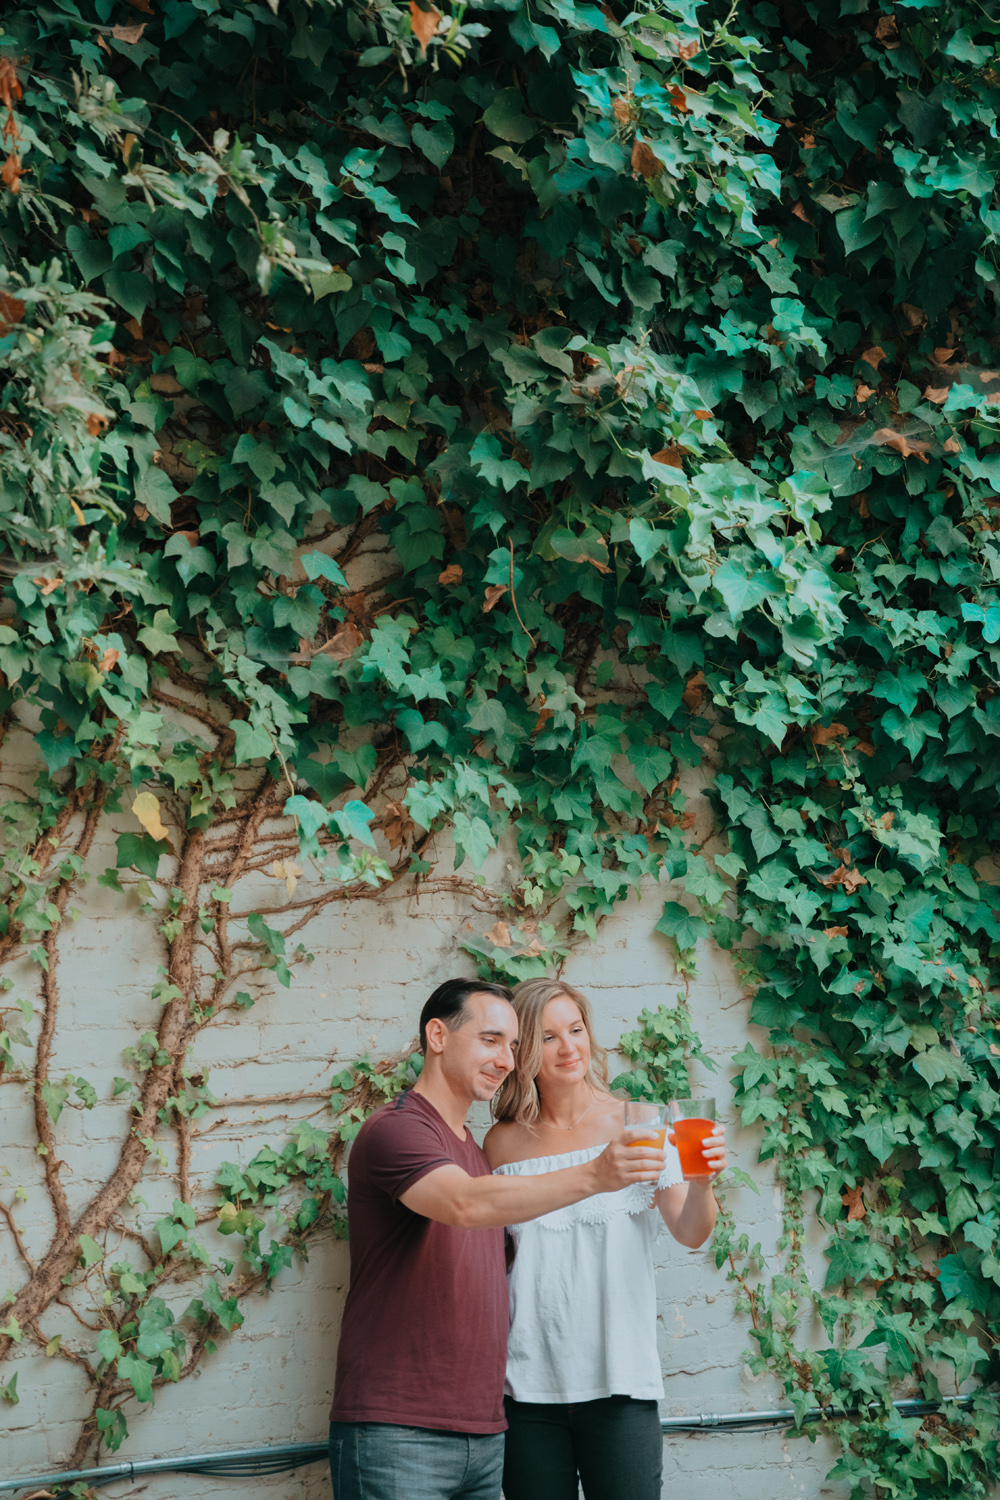 Chico-CA-engagement-photography-Madison-Bear-Garden-Chico-Downtown-Argus-Bar-76.jpg